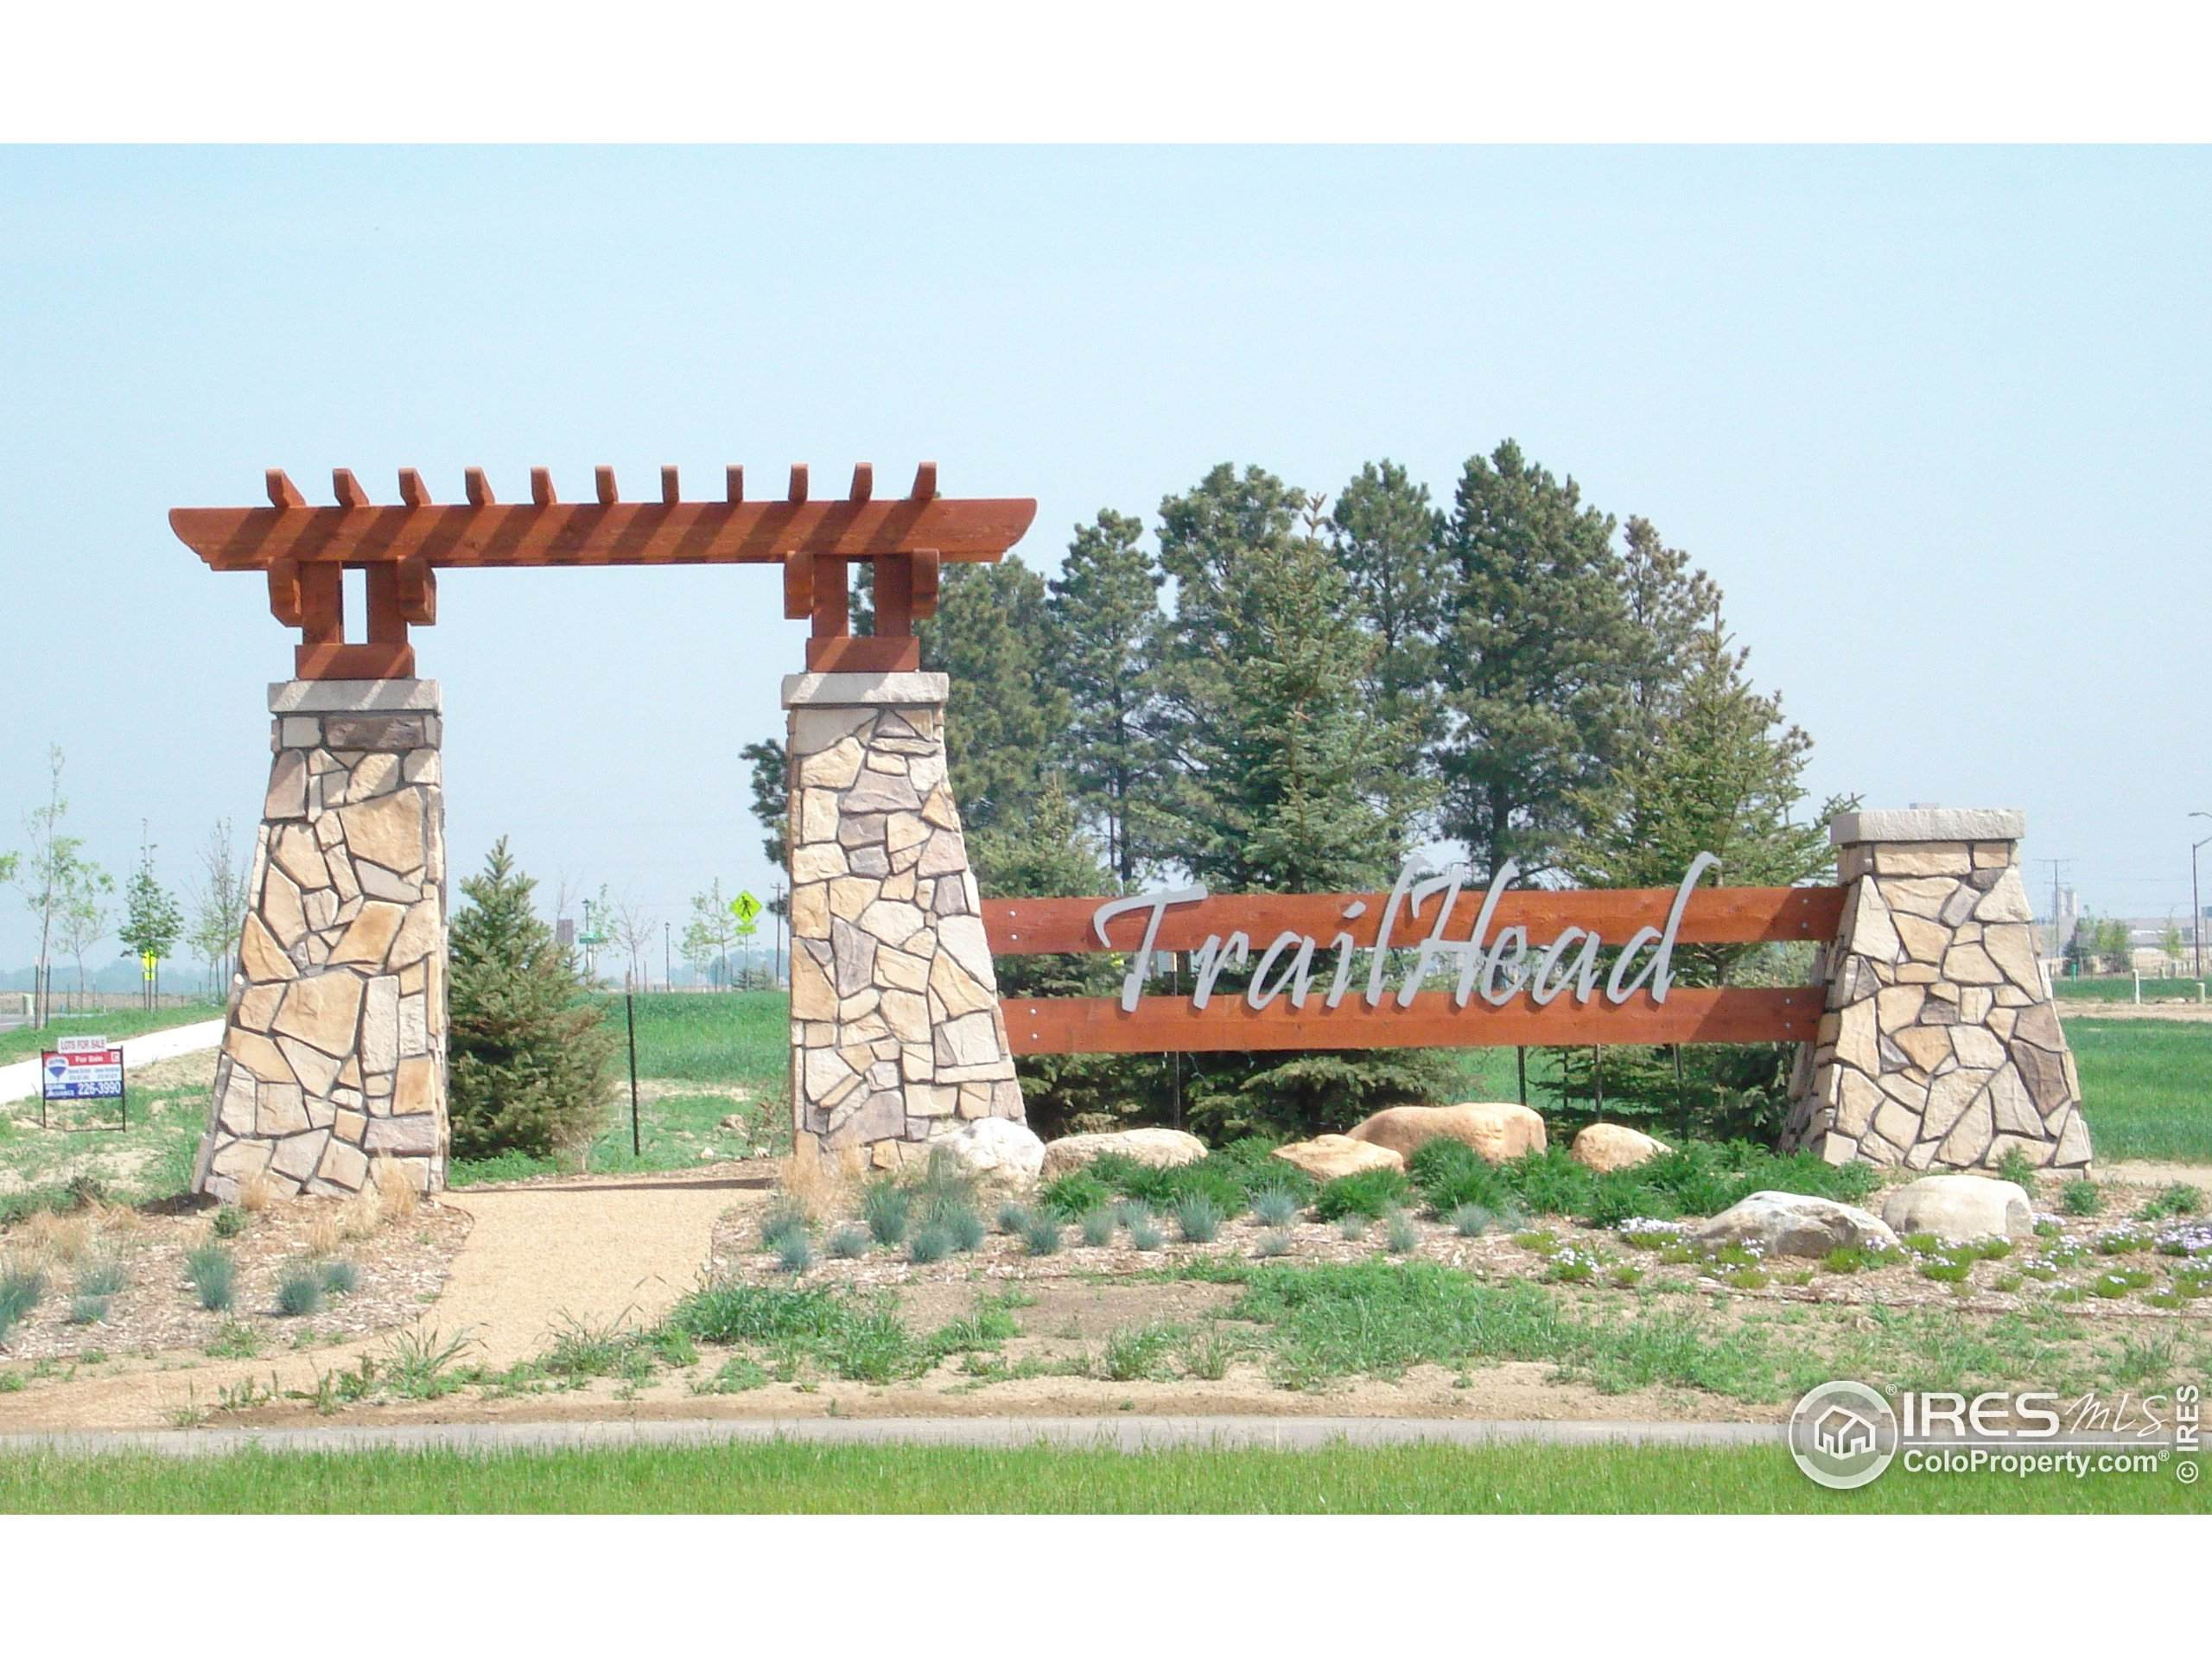 410 W 10th St, Loveland, CO 80537 (MLS #925089) :: Downtown Real Estate Partners